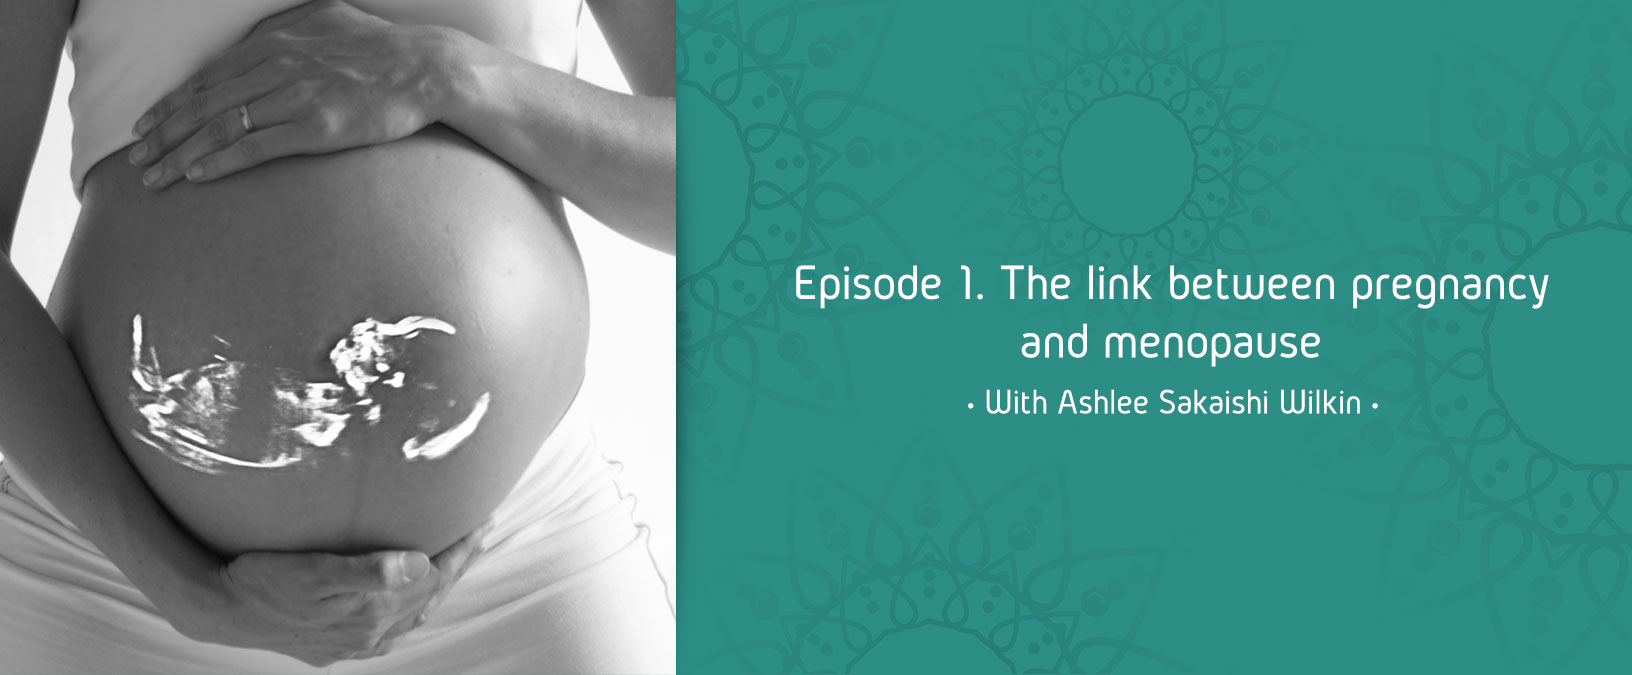 Episode 1. The link between pregnancy and menopause